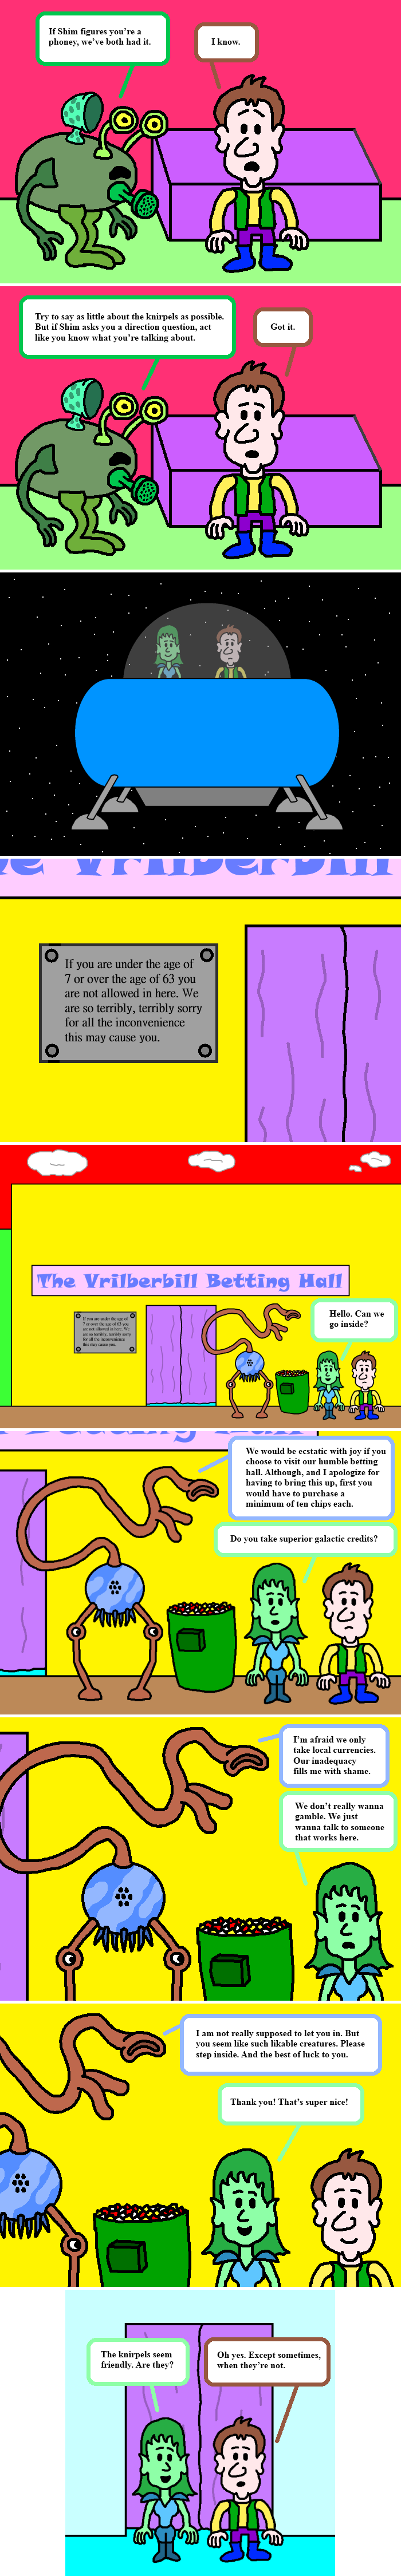 The Vrilberbill Betting Hall